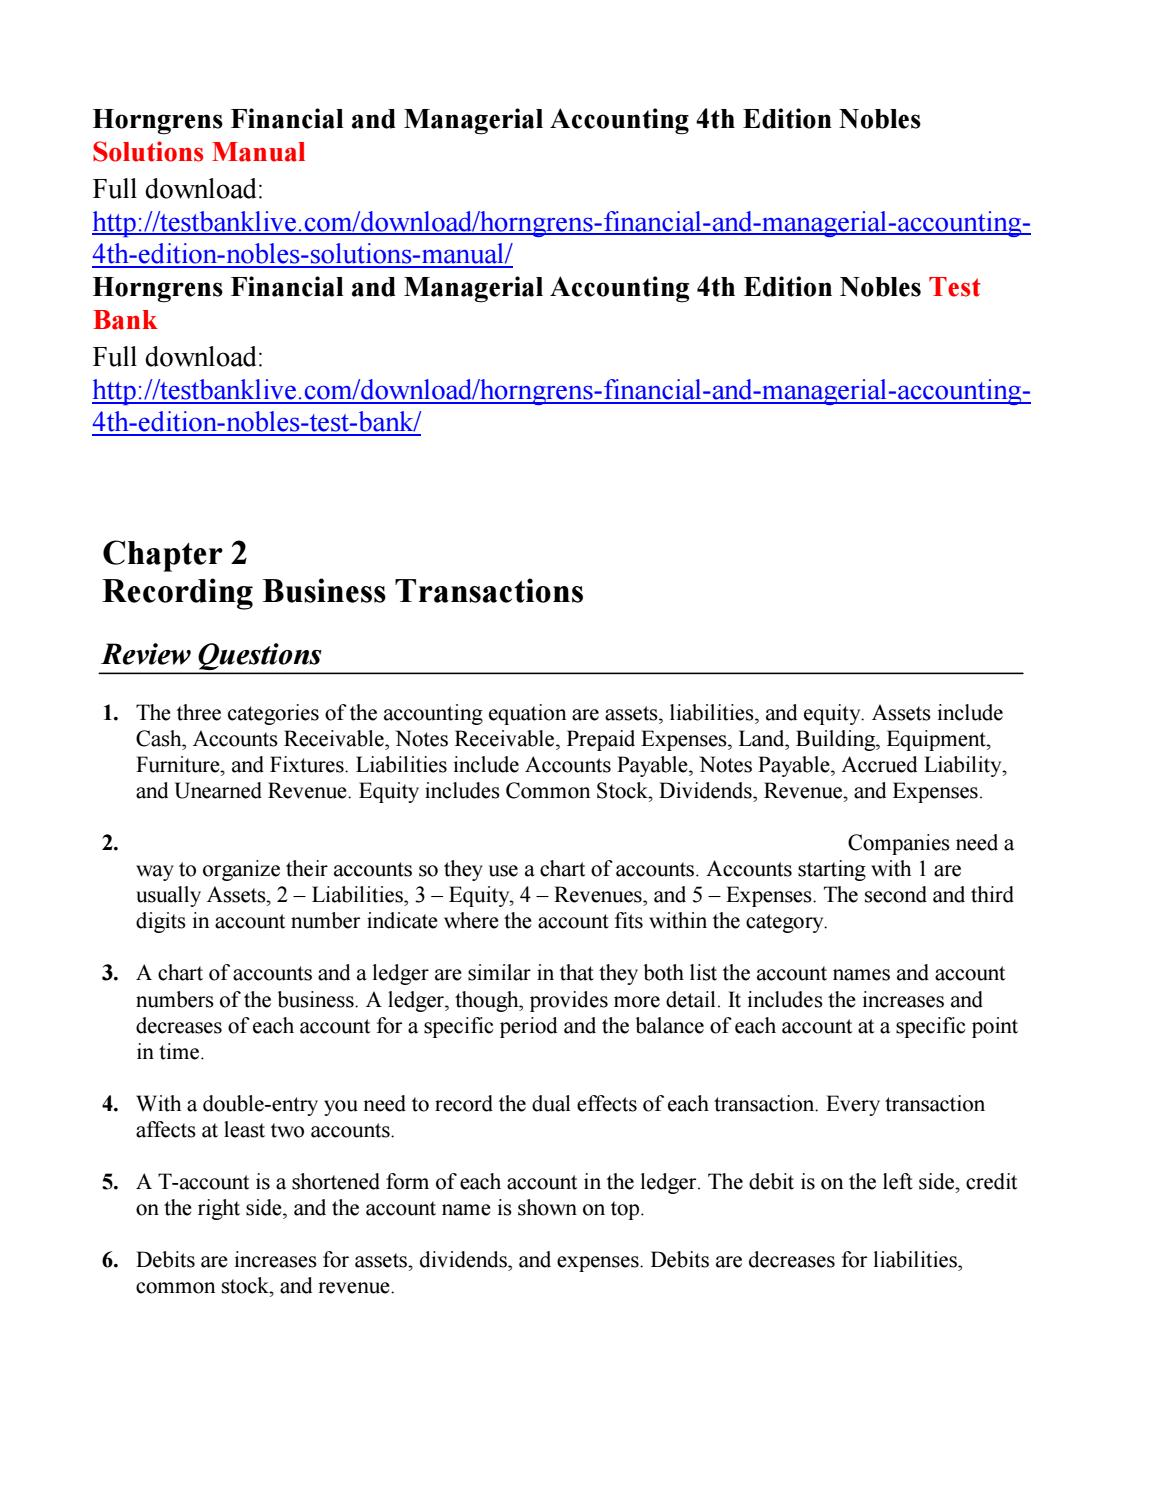 Horngrens financial and managerial accounting 4th edition nobles solutions  manual by lzlz111 - issuu